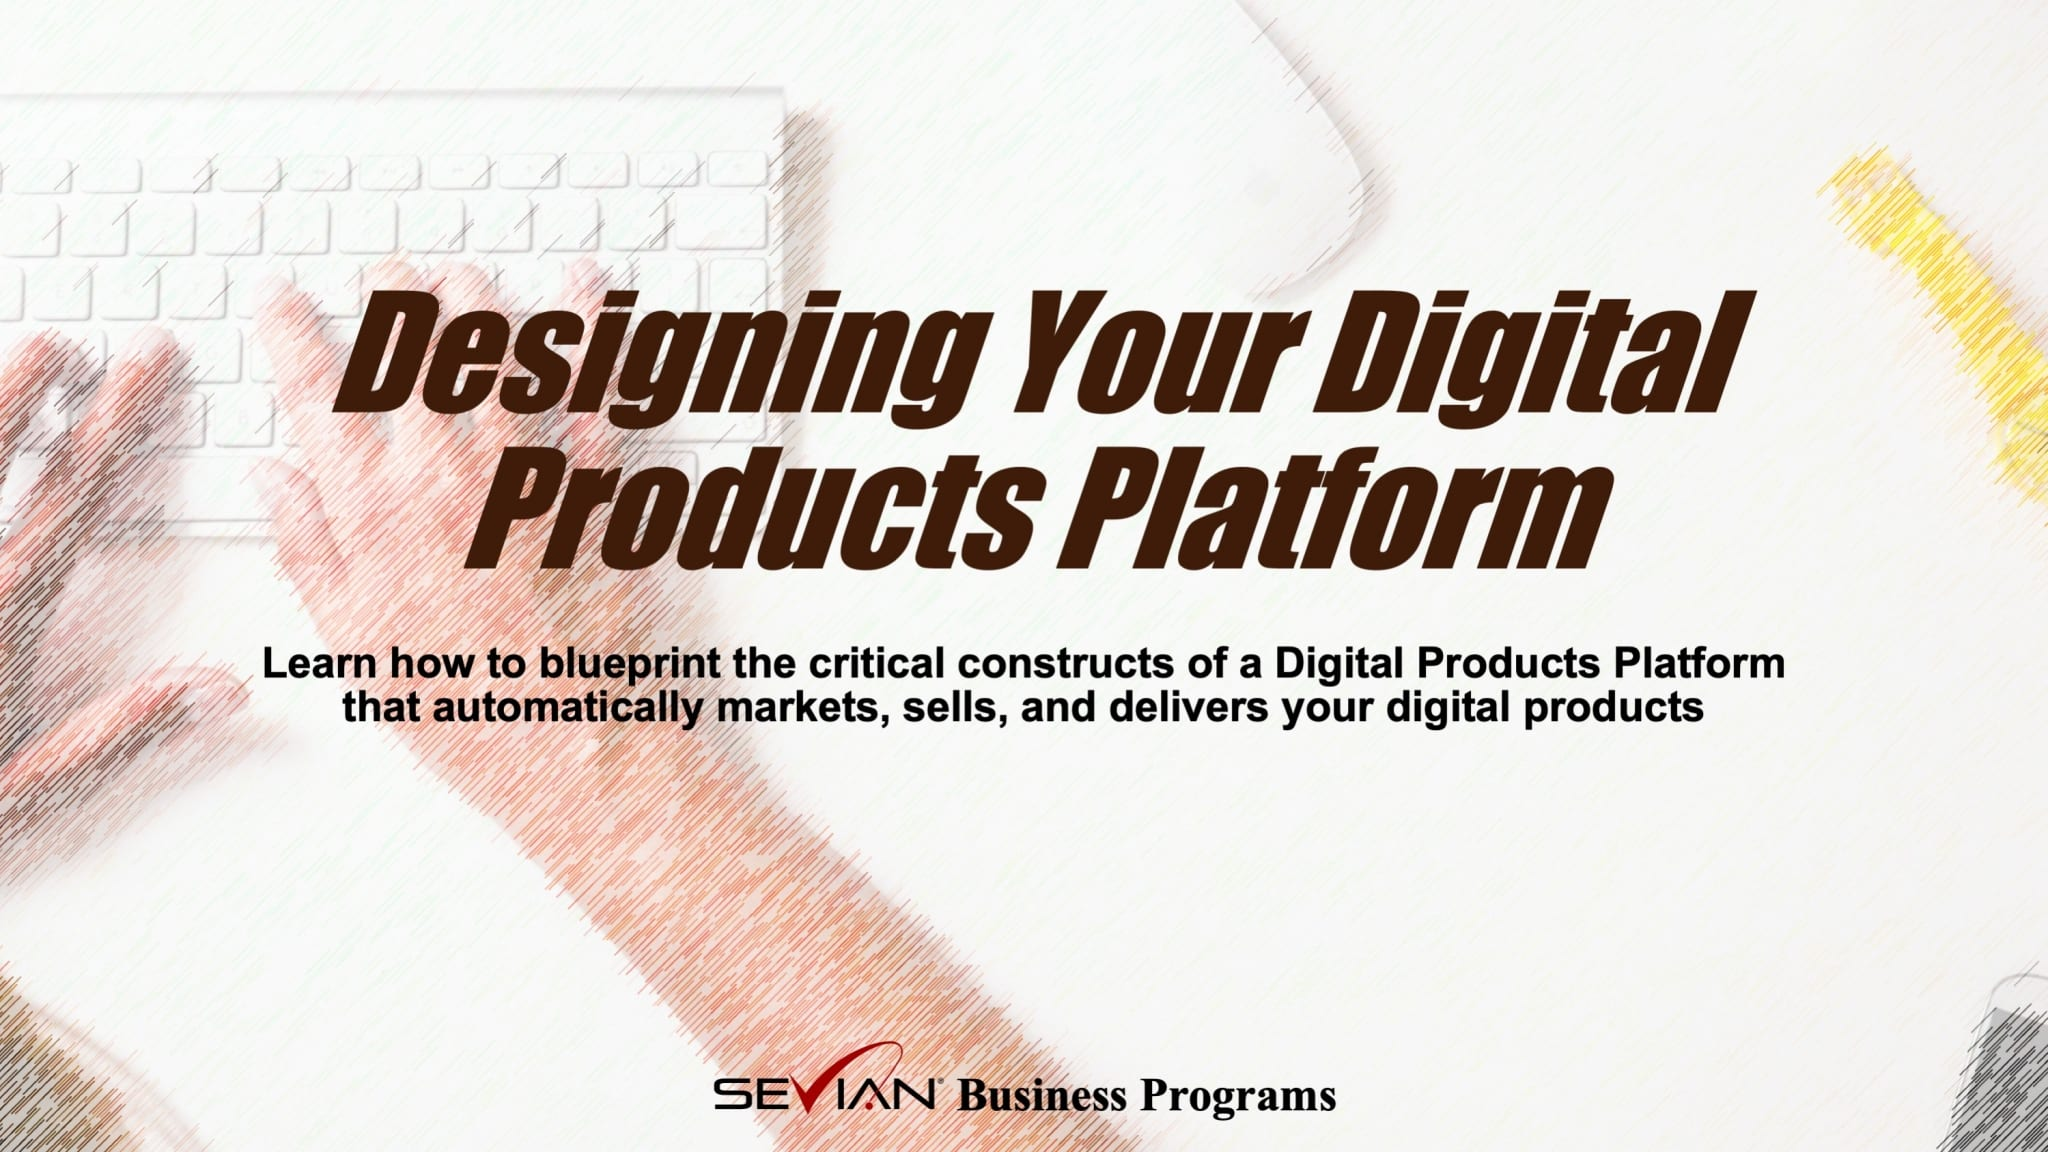 Design Your Digital Products Platform Training Program